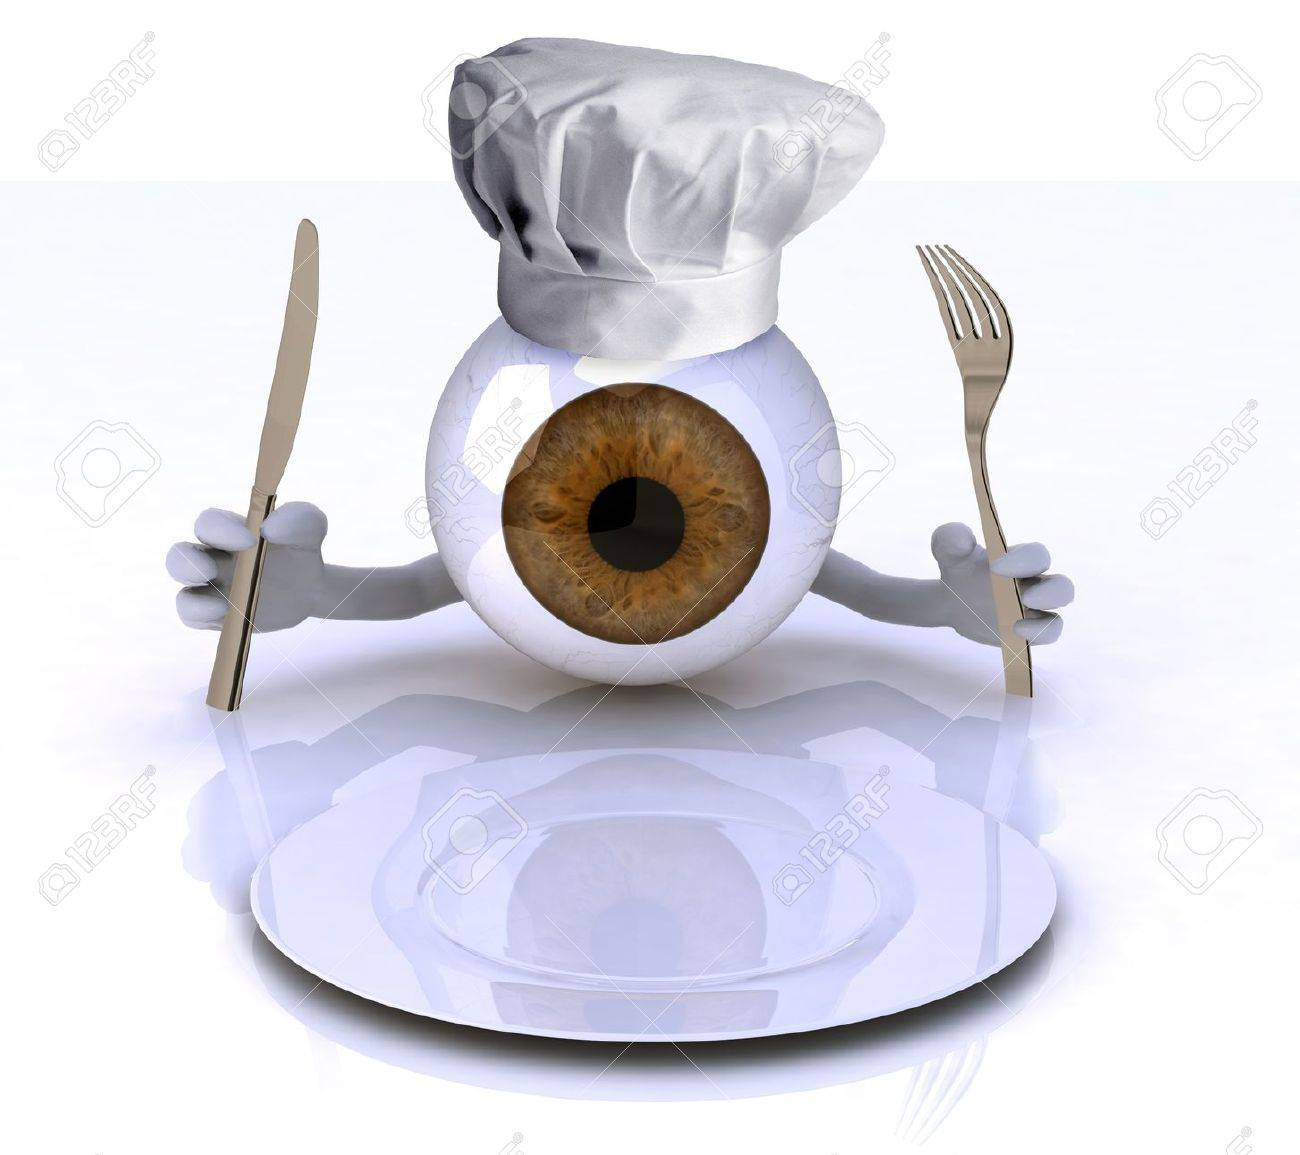 http://previews.123rf.com/images/fberti/fberti1212/fberti121200115/16903893-big-eye-with-hands-and-utensils-and-chef-hat-in-front-of-an-empty-plate-3d-illustration-Stock-Illustration.jpg